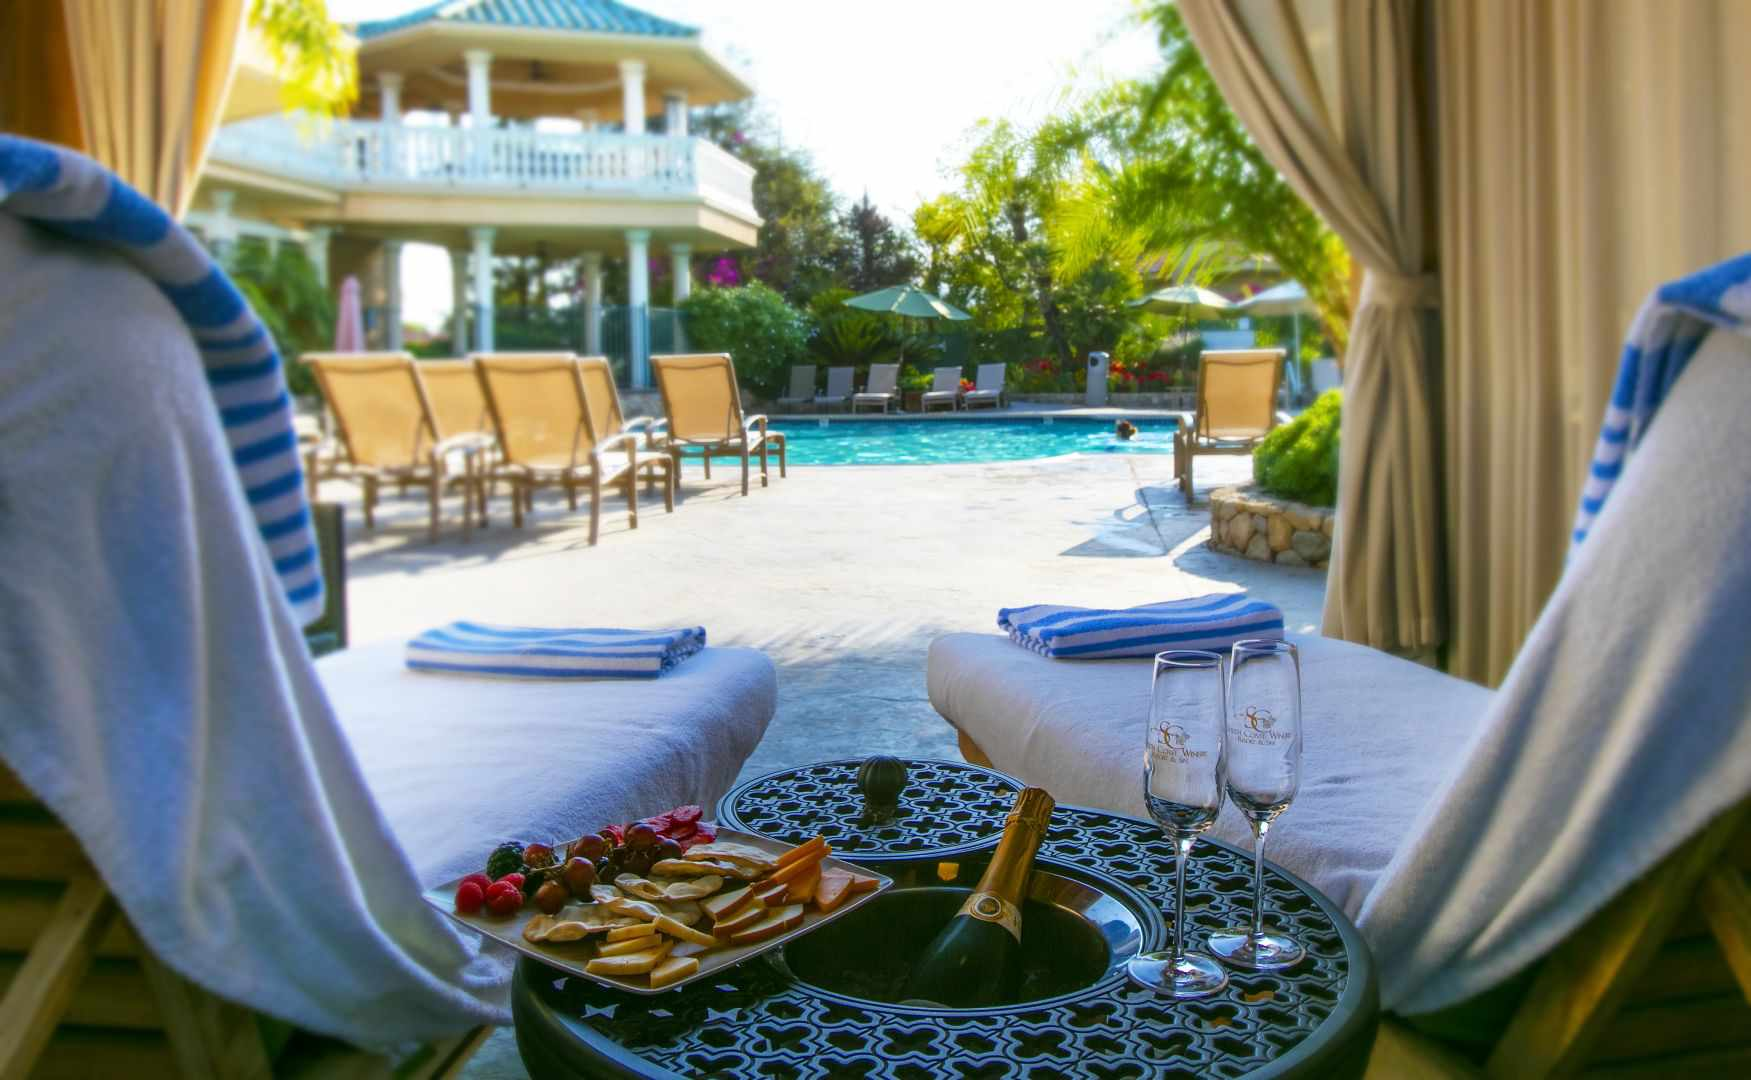 two pool lounge begs in a cabana with a bottle of champagne and charcuterie board in between the beds.